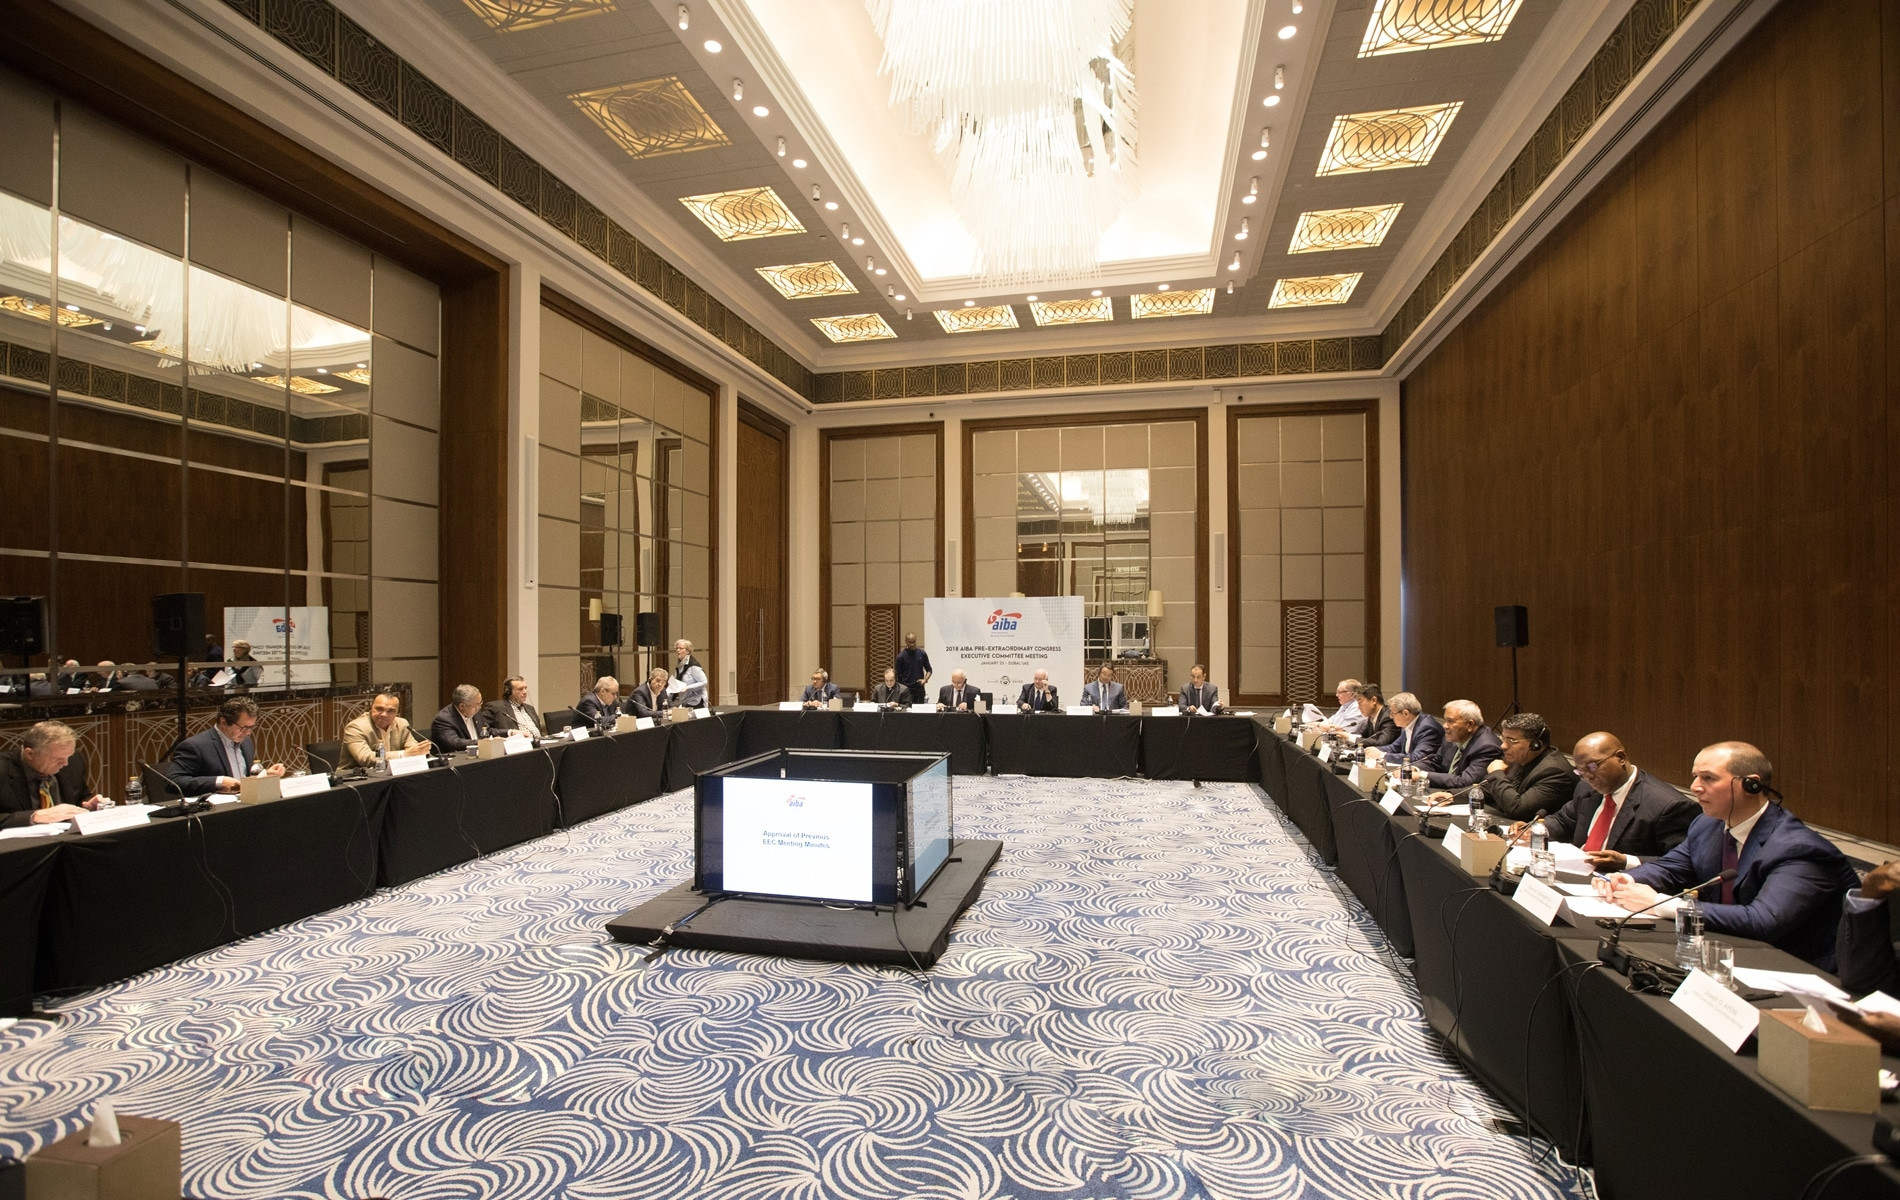 A new Interim President is due to be elected at the meeting in Istanbul ©AIBA